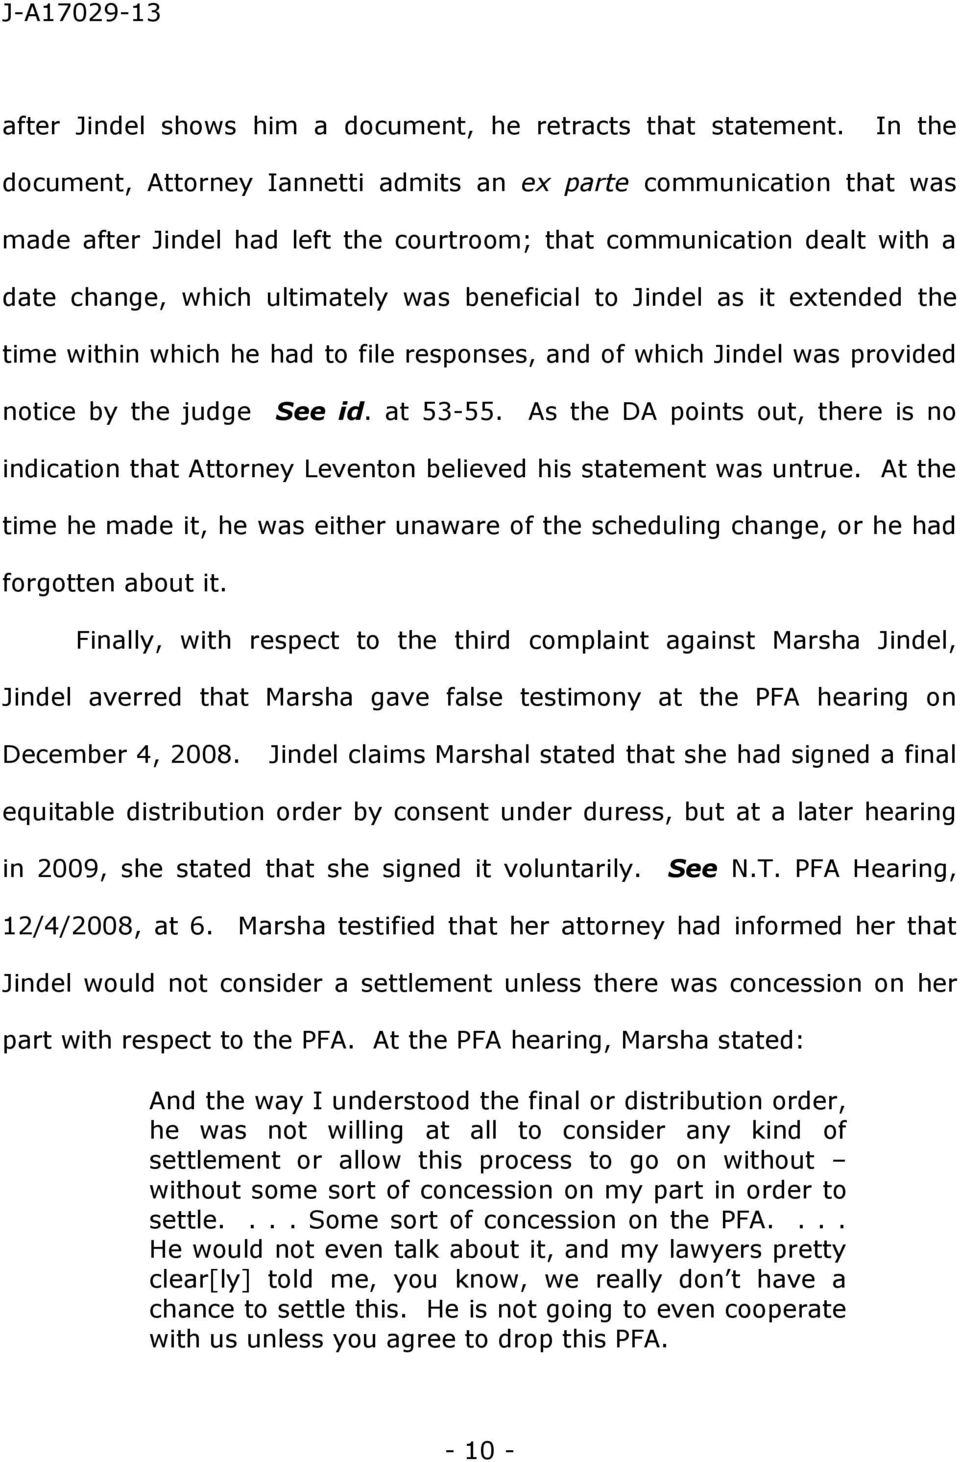 Jindel as it extended the time within which he had to file responses, and of which Jindel was provided notice by the judge See id. at 53-55.